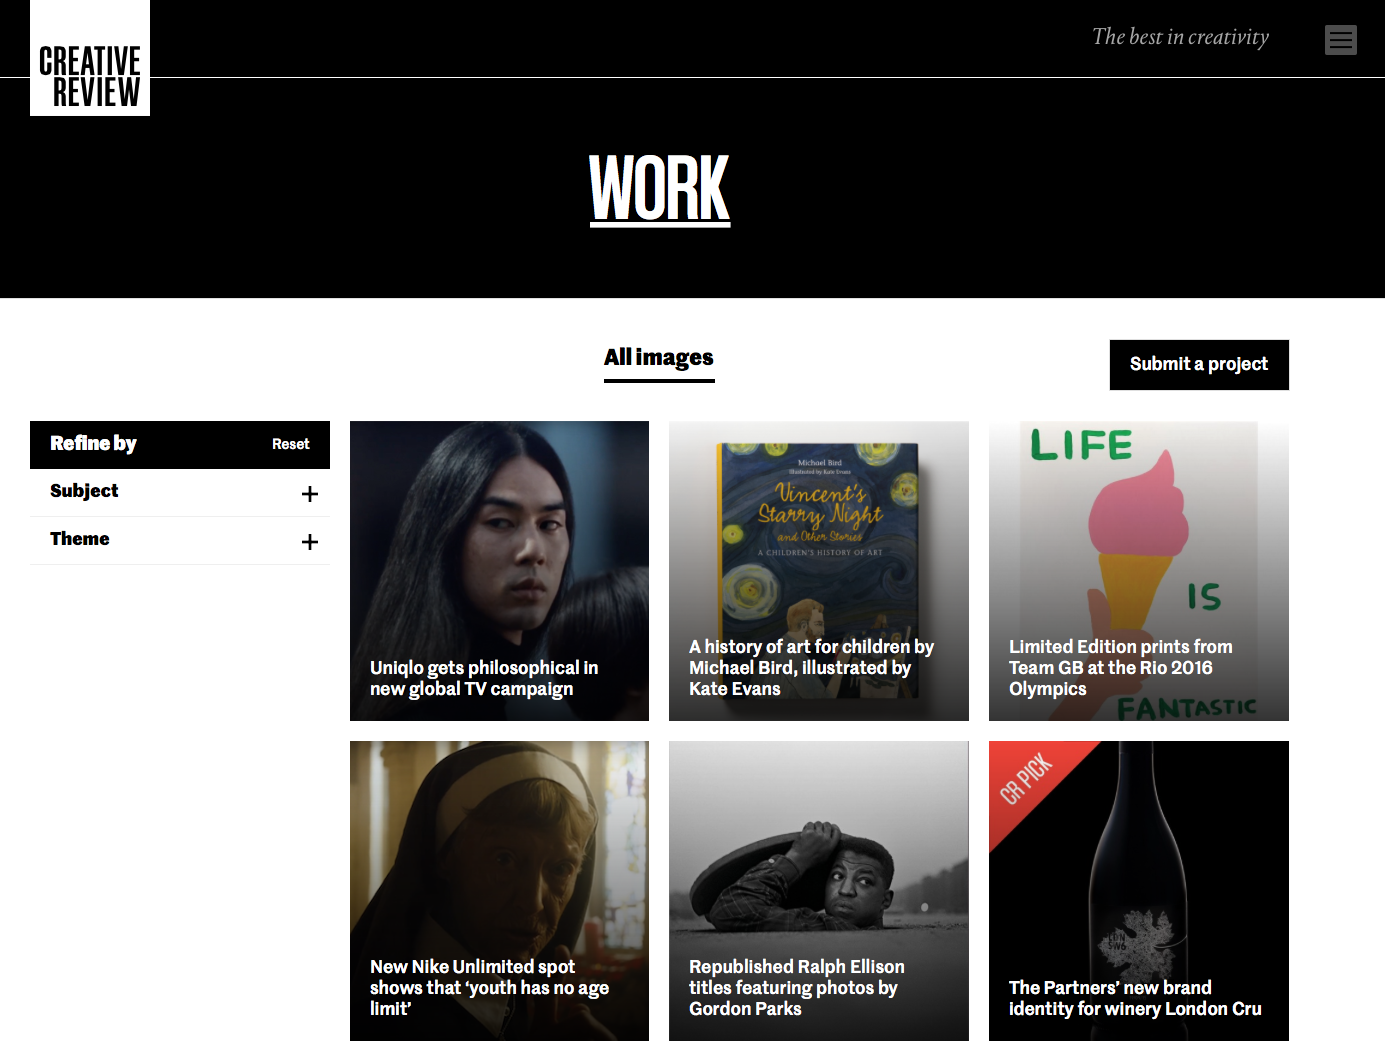 The brand new work section on the new creative review website